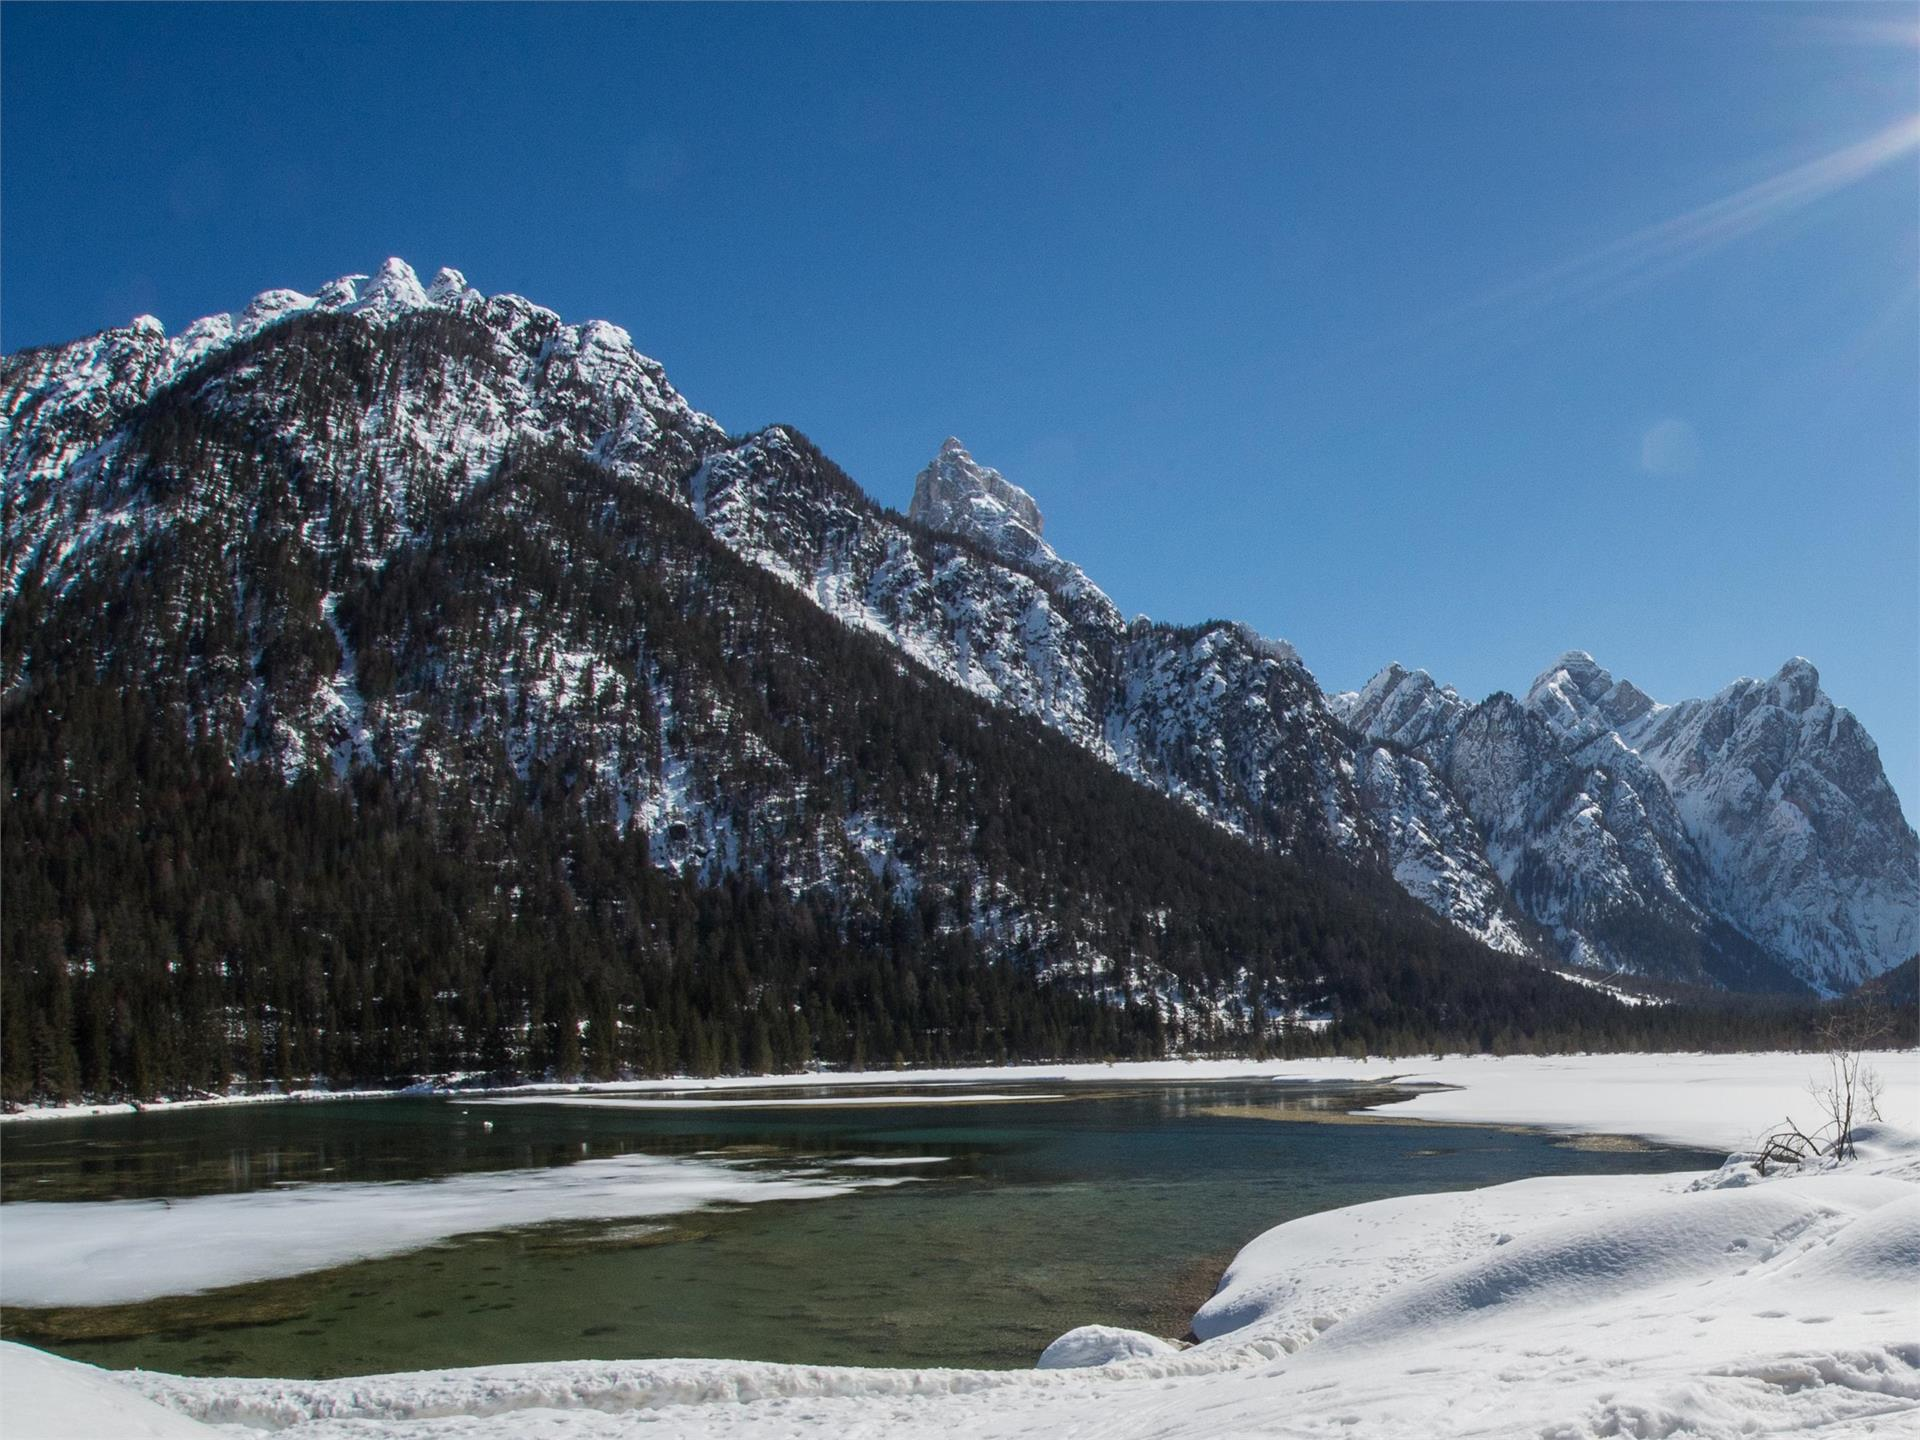 Winter walking tour: Dobbiaco/Toblach - Lake of Dobbiaco/Toblach